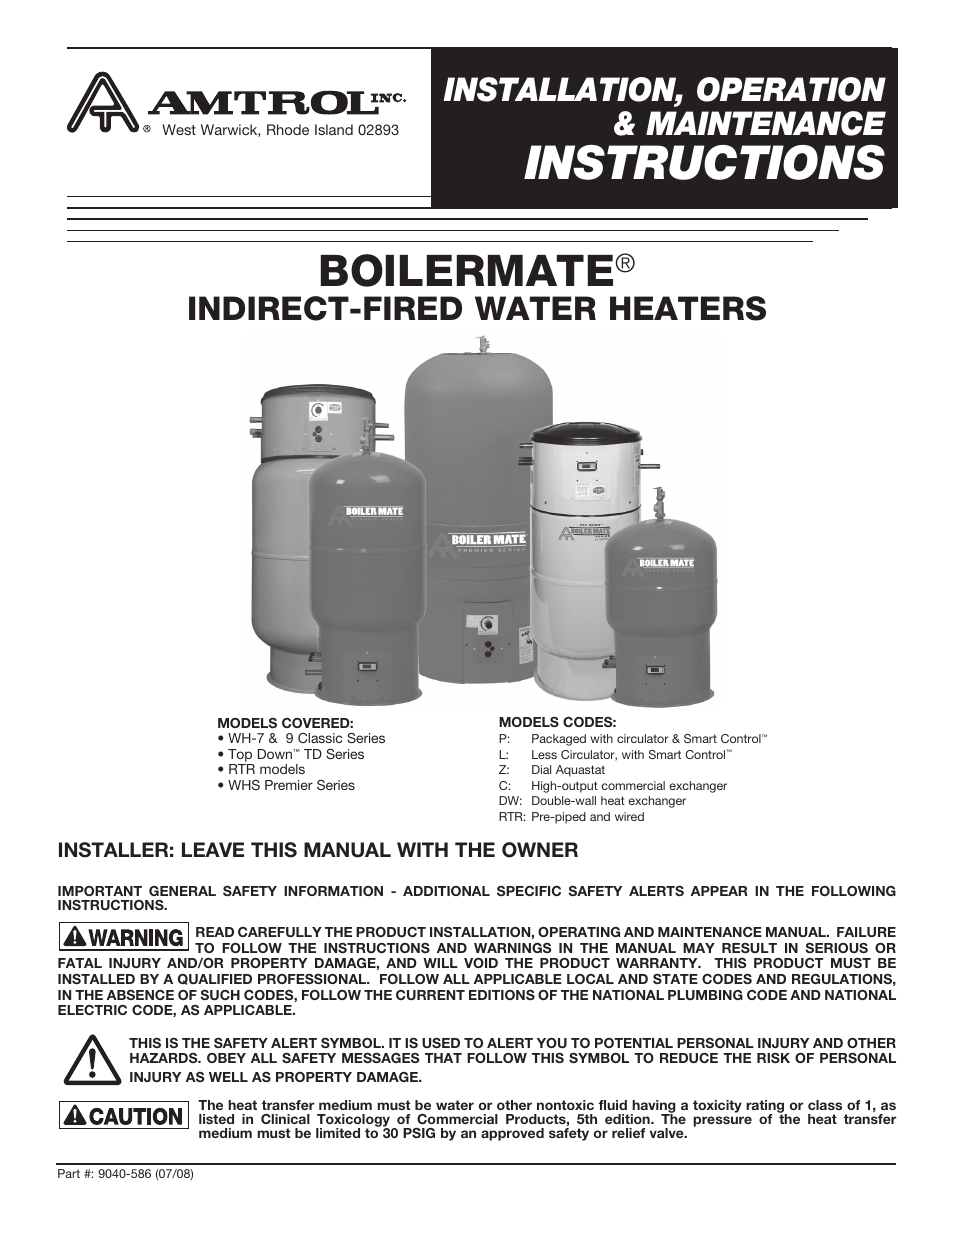 amtrol boilermate top down page1 amtrol boilermate top down user manual 32 pages also for wh 9  at mifinder.co